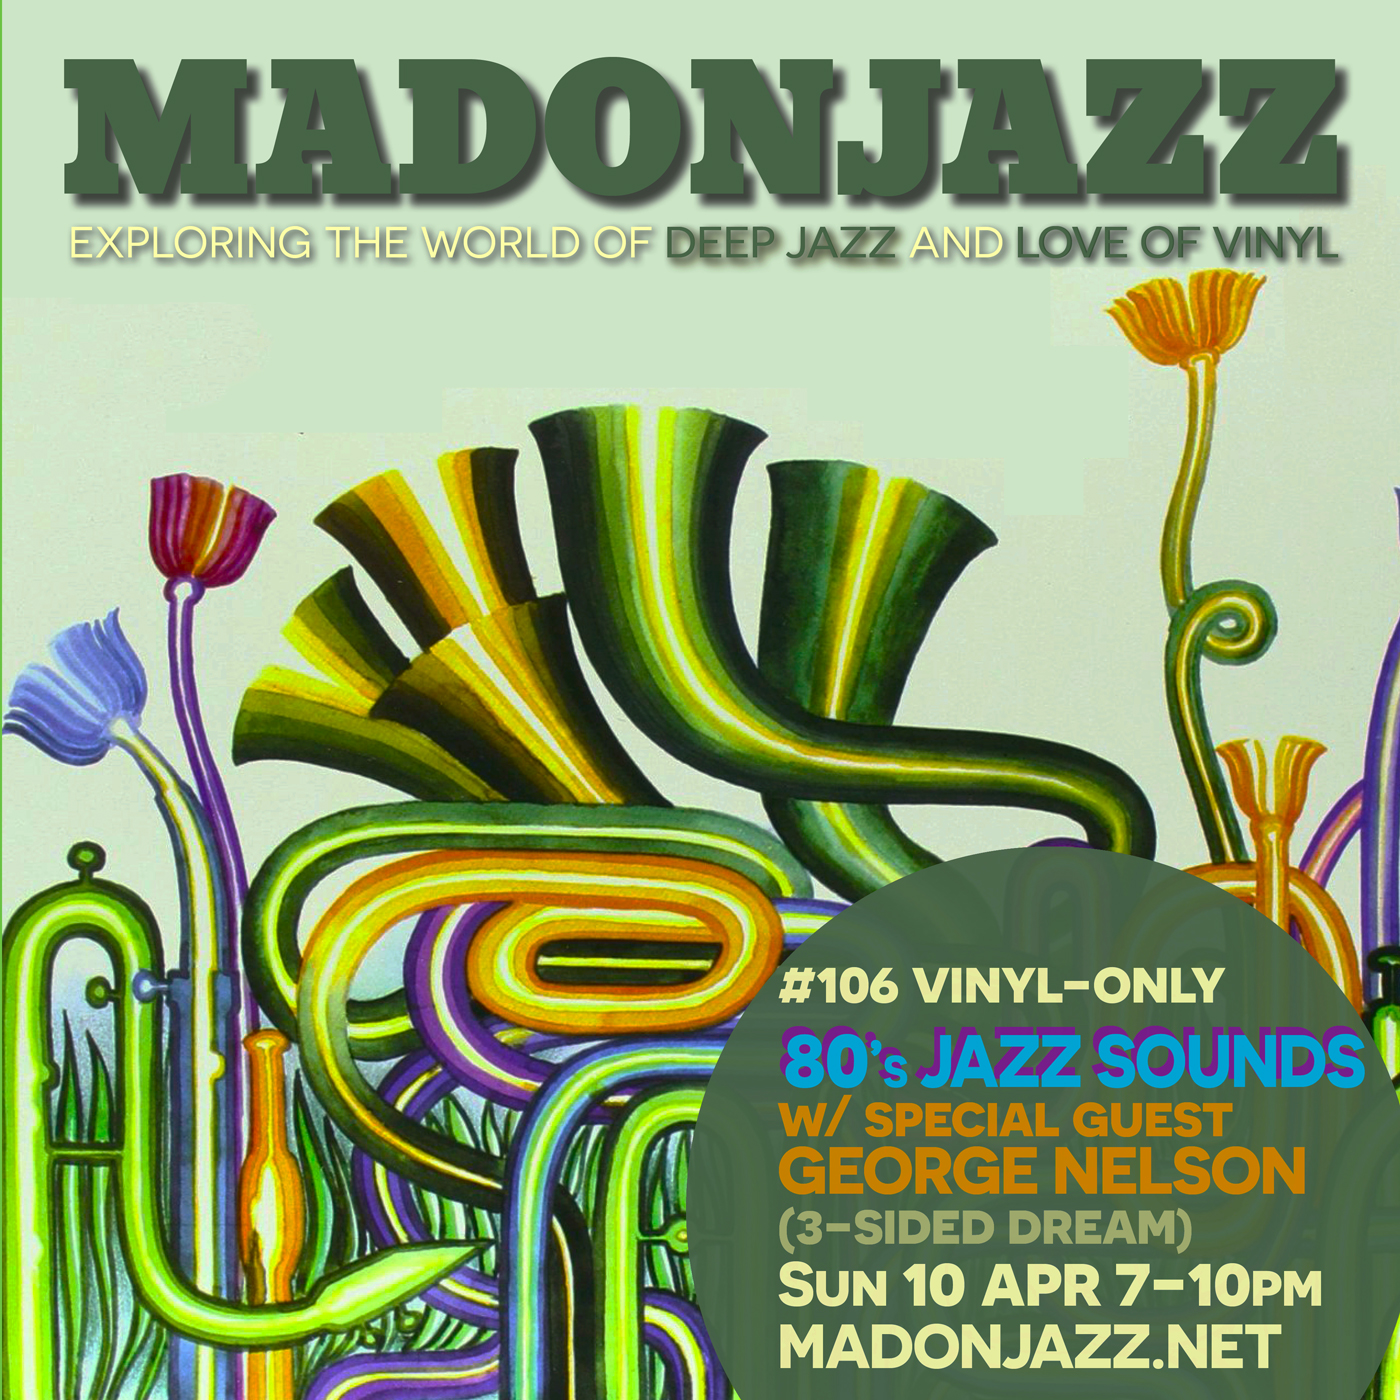 MADONJAZZ #106 – 80s JAZZ SOUNDS